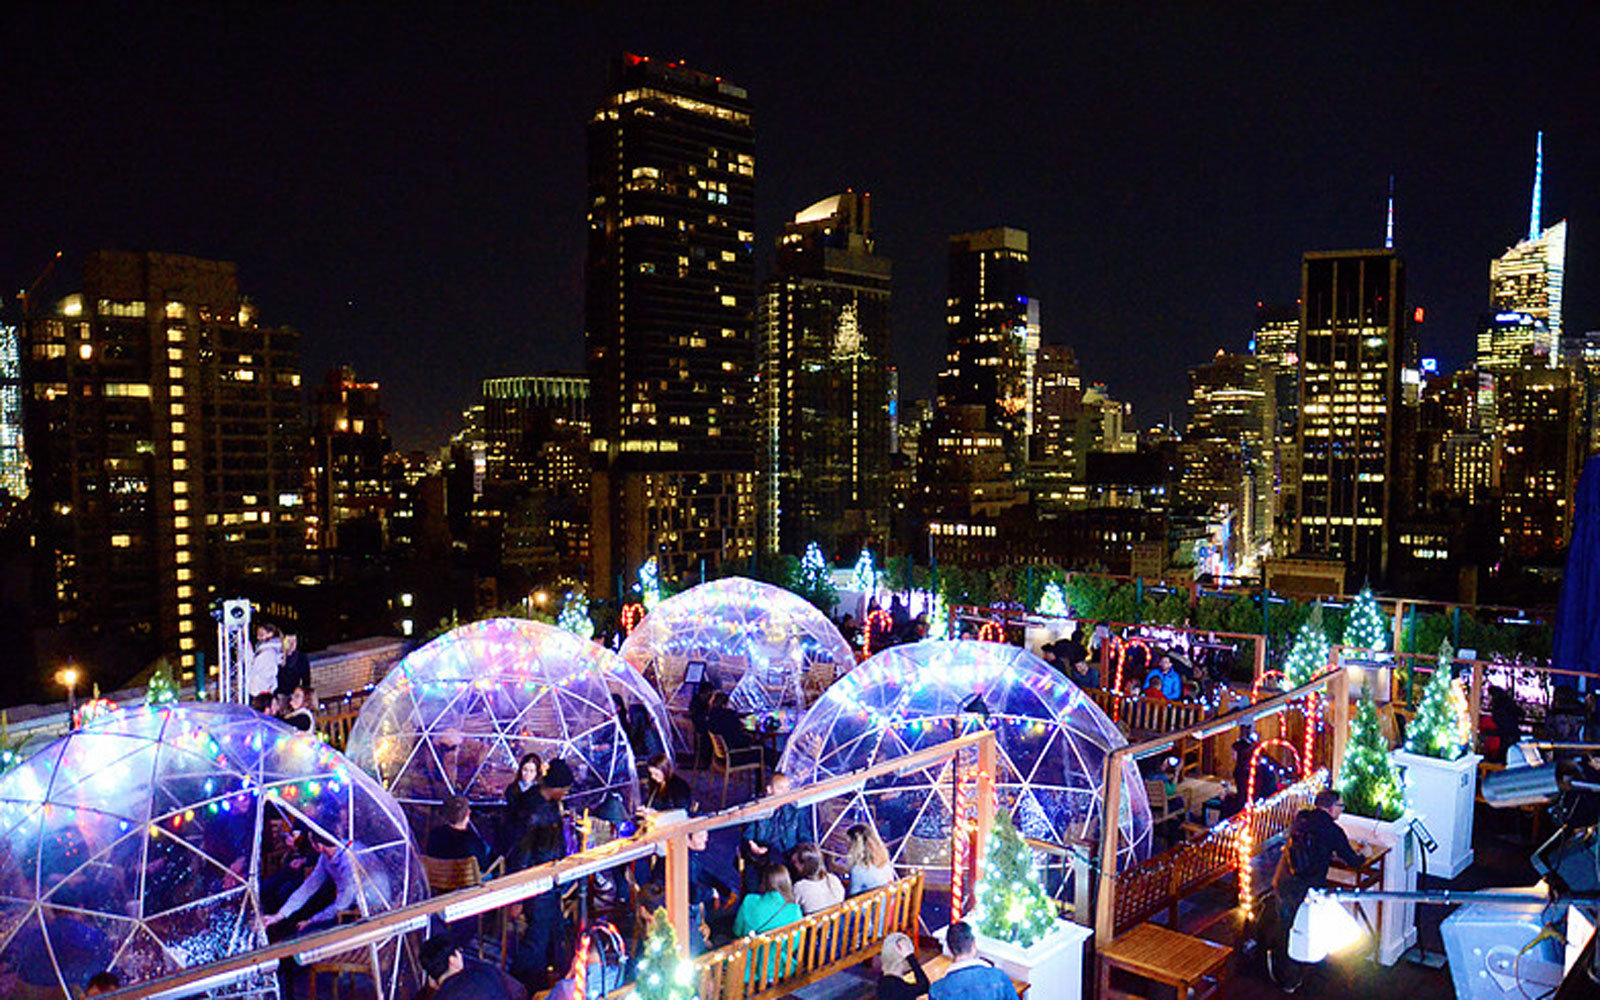 Grab A Drink At This Rooftop Igloo Bar In New York City